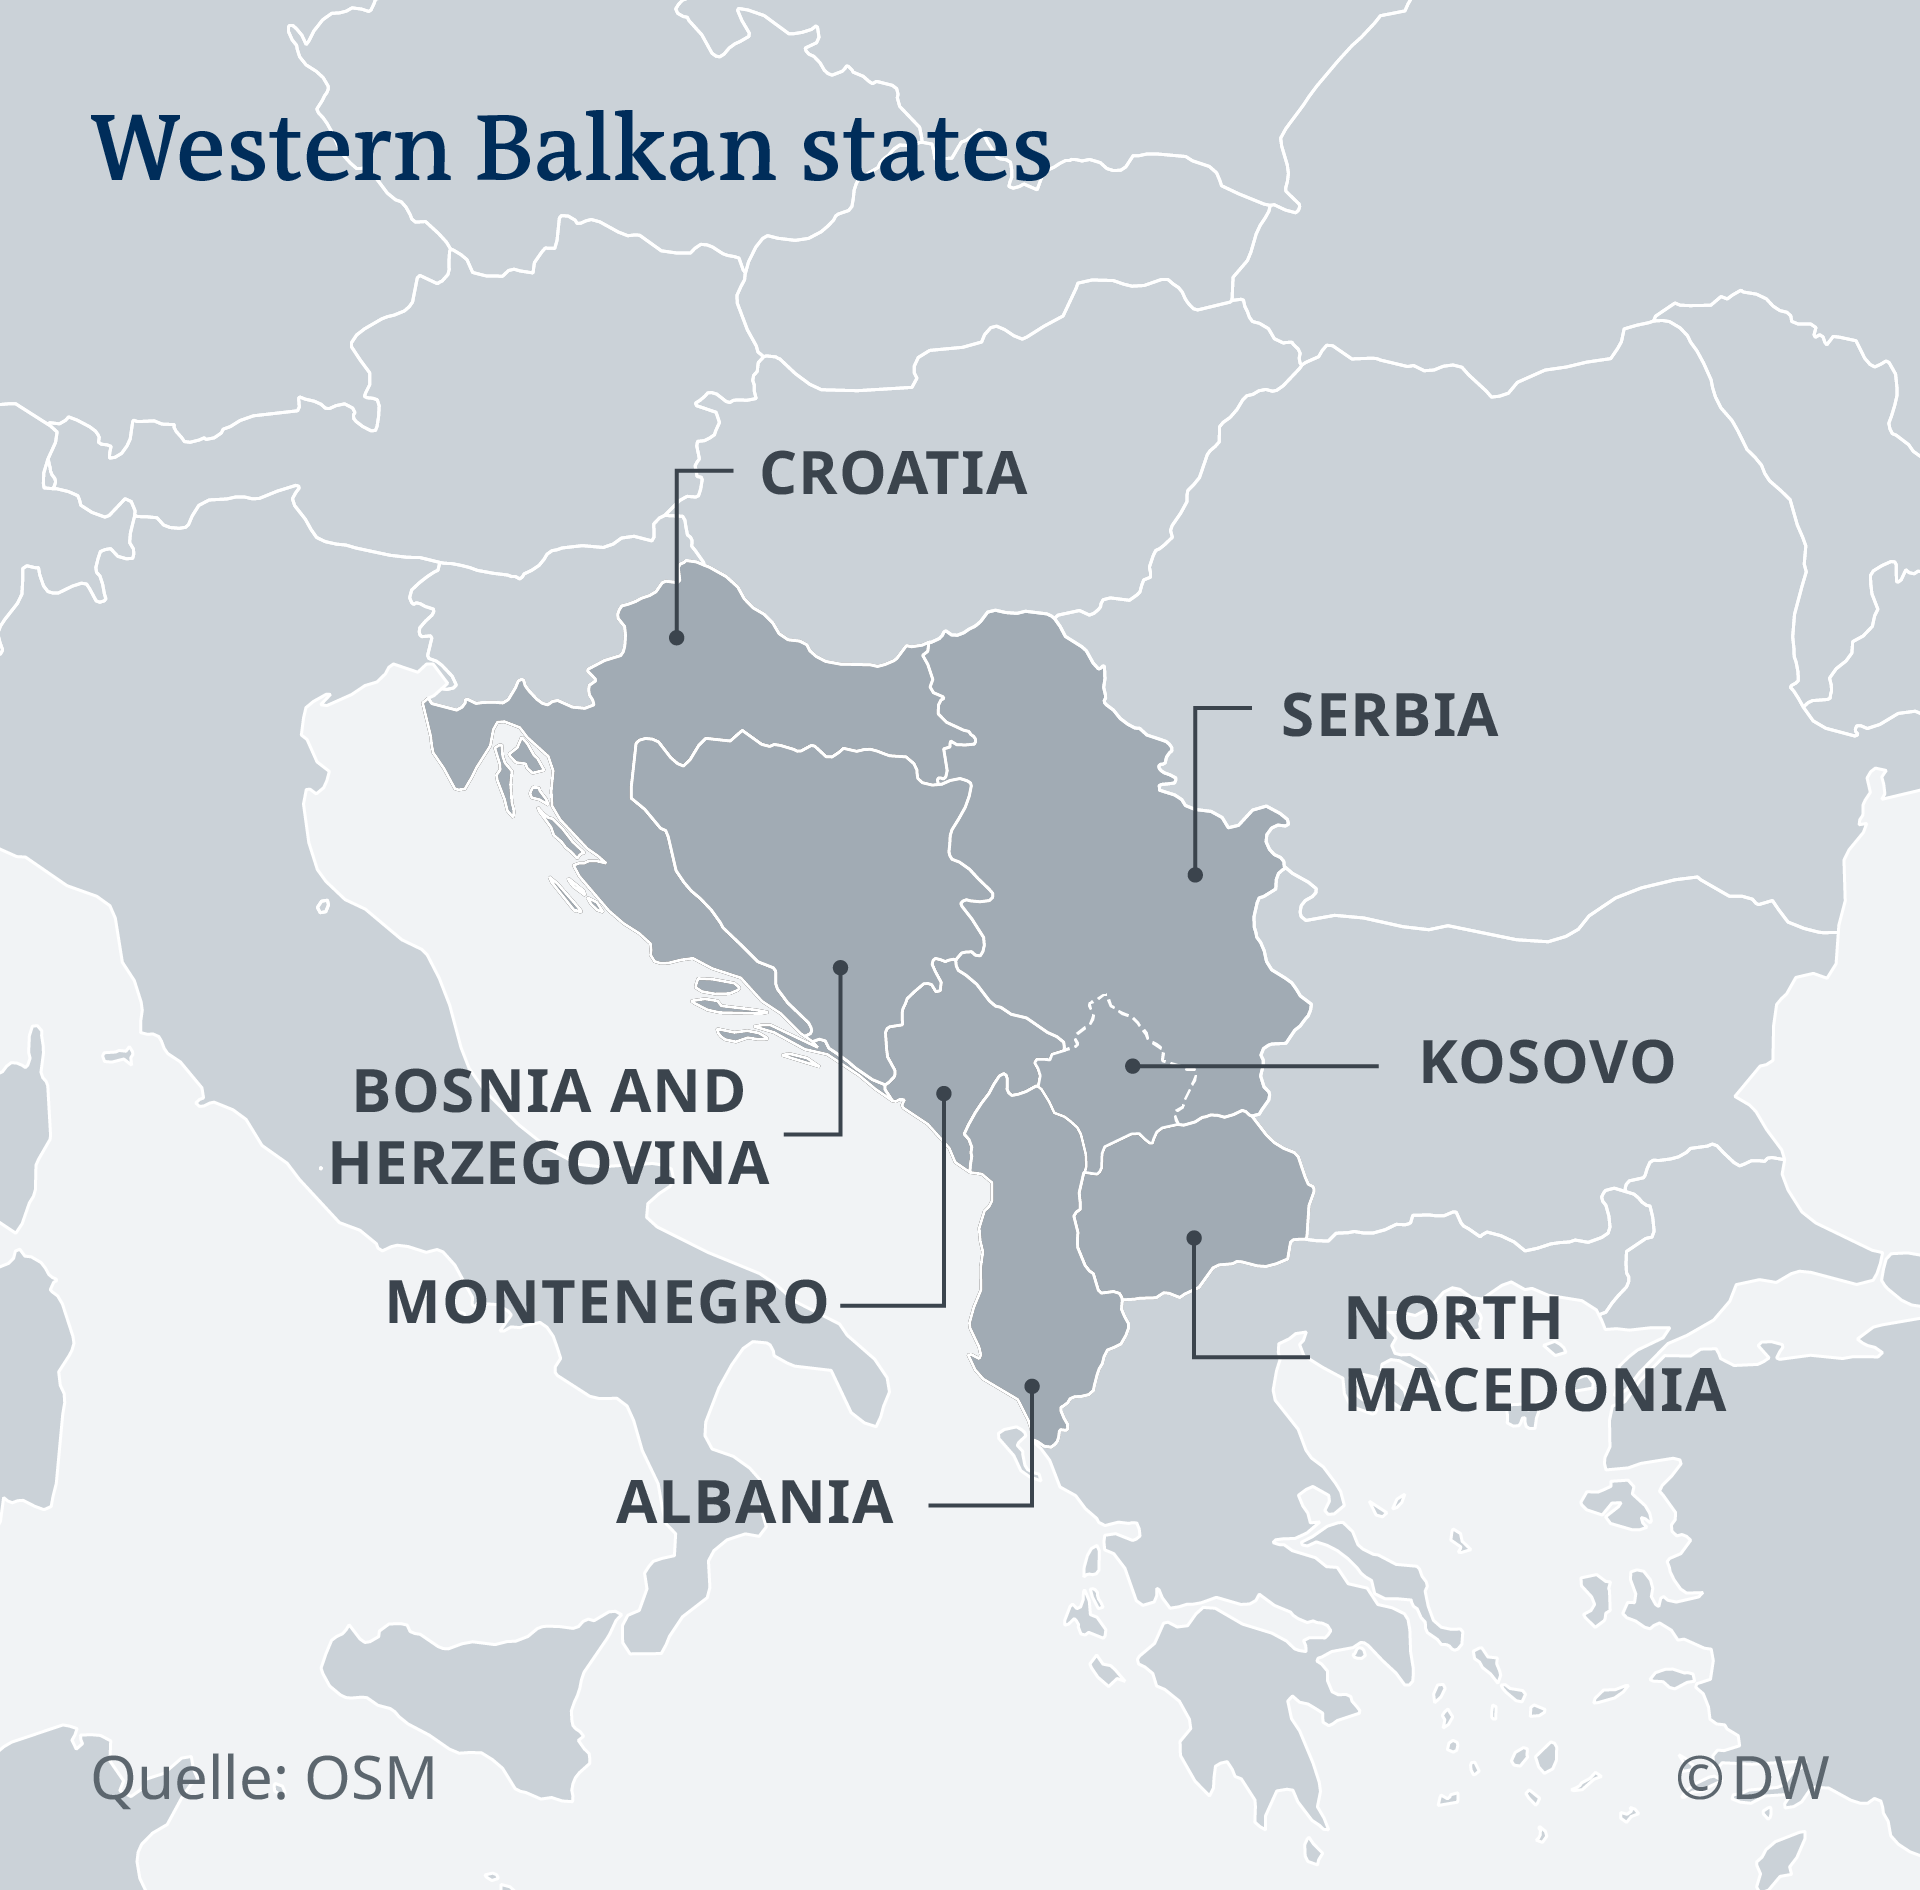 DW Infographic: Western Balkan states